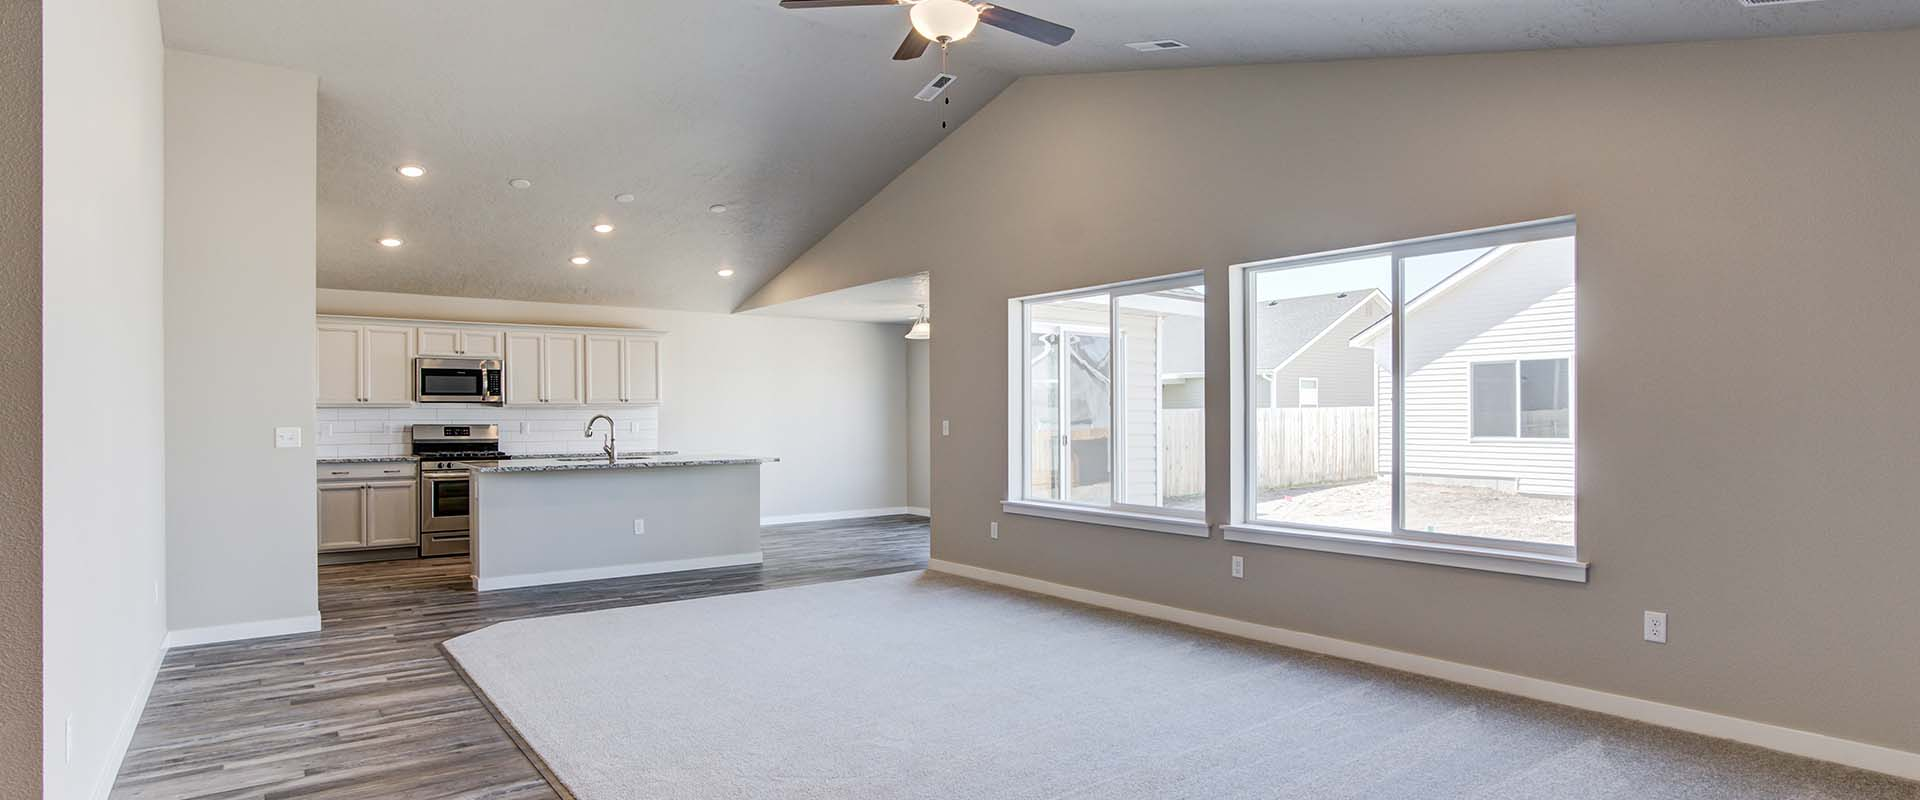 Sapphire-Great-Room-new-homes-boise-idaho-hubble-homes.jpg